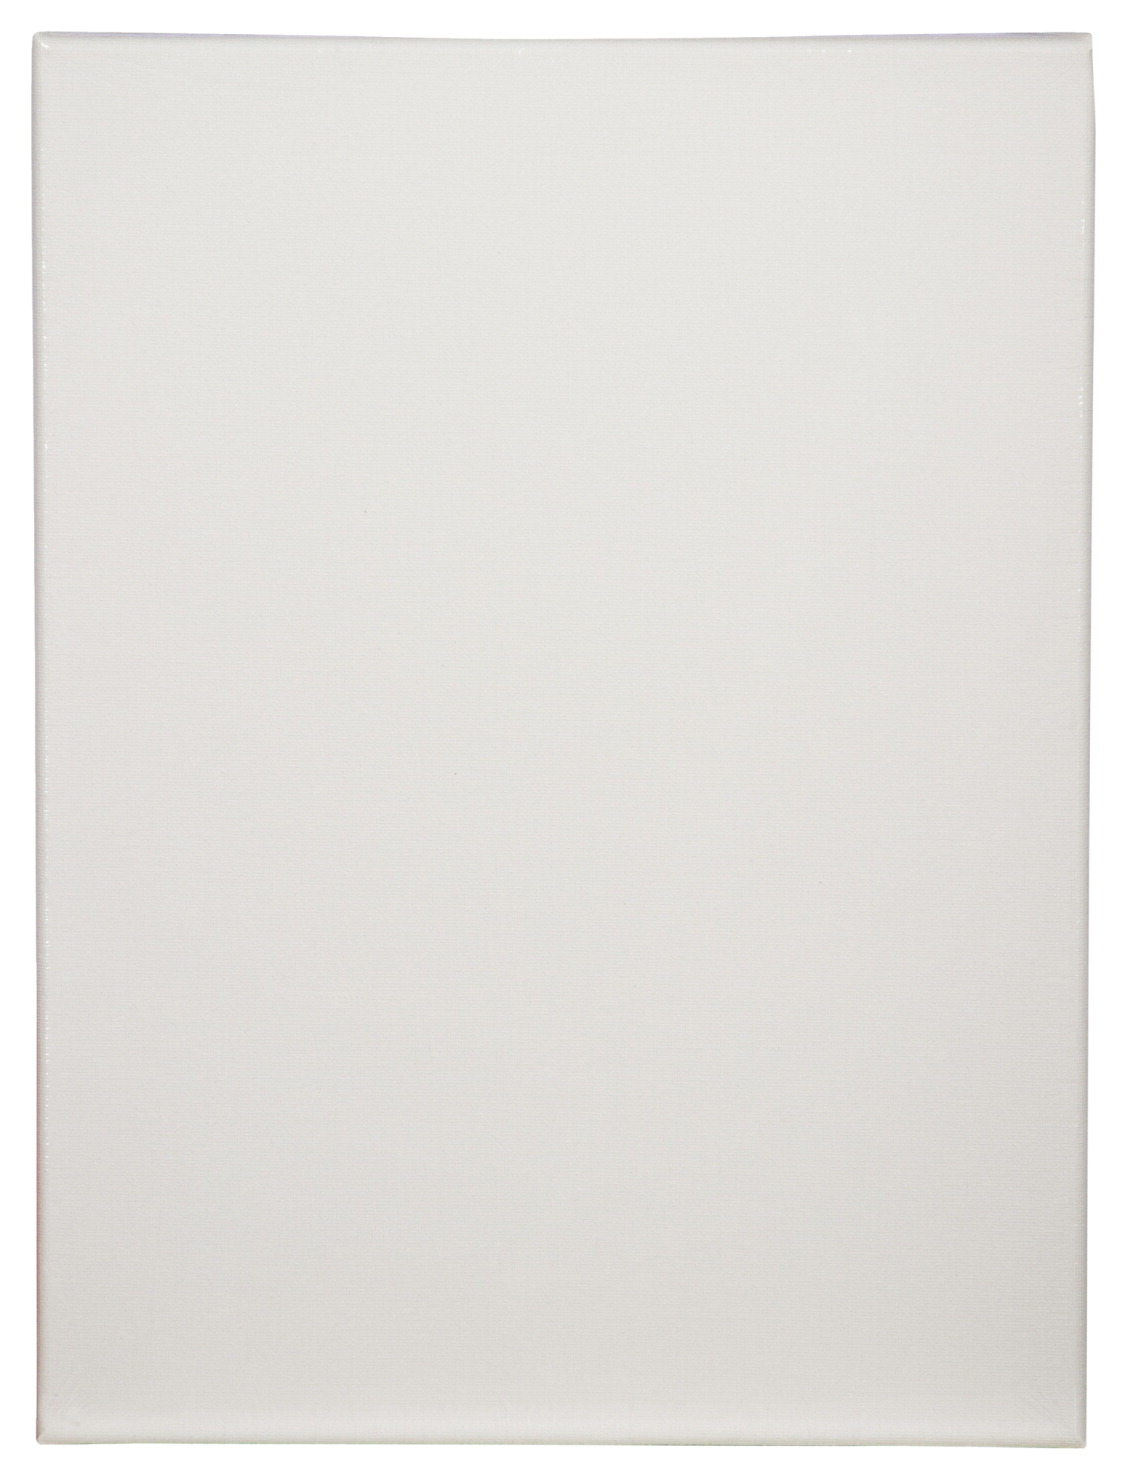 Tara Stretched Back Stapled Cotton Canvas, 9 x 12 in, White, Pack of 3